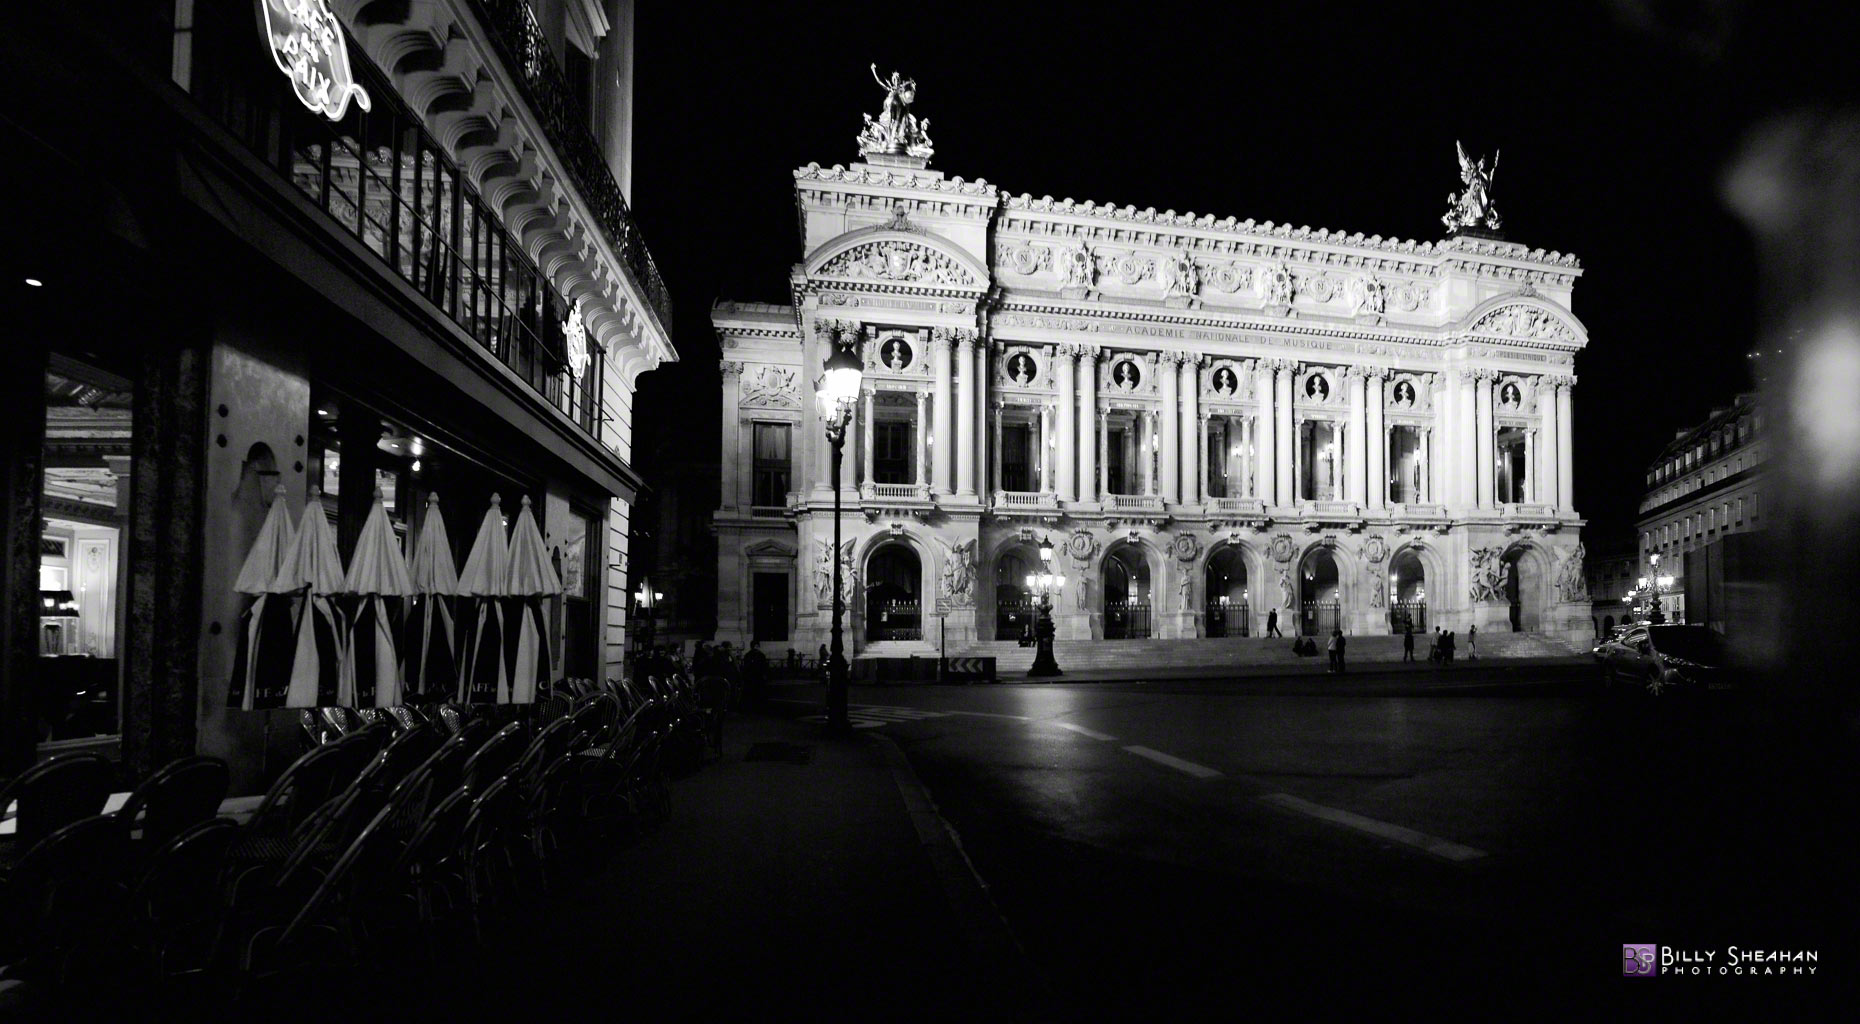 L_Opera_National_de_Paris__France_Paris2008_24Apr2008_0634-5-6-7_BW-16x29_D